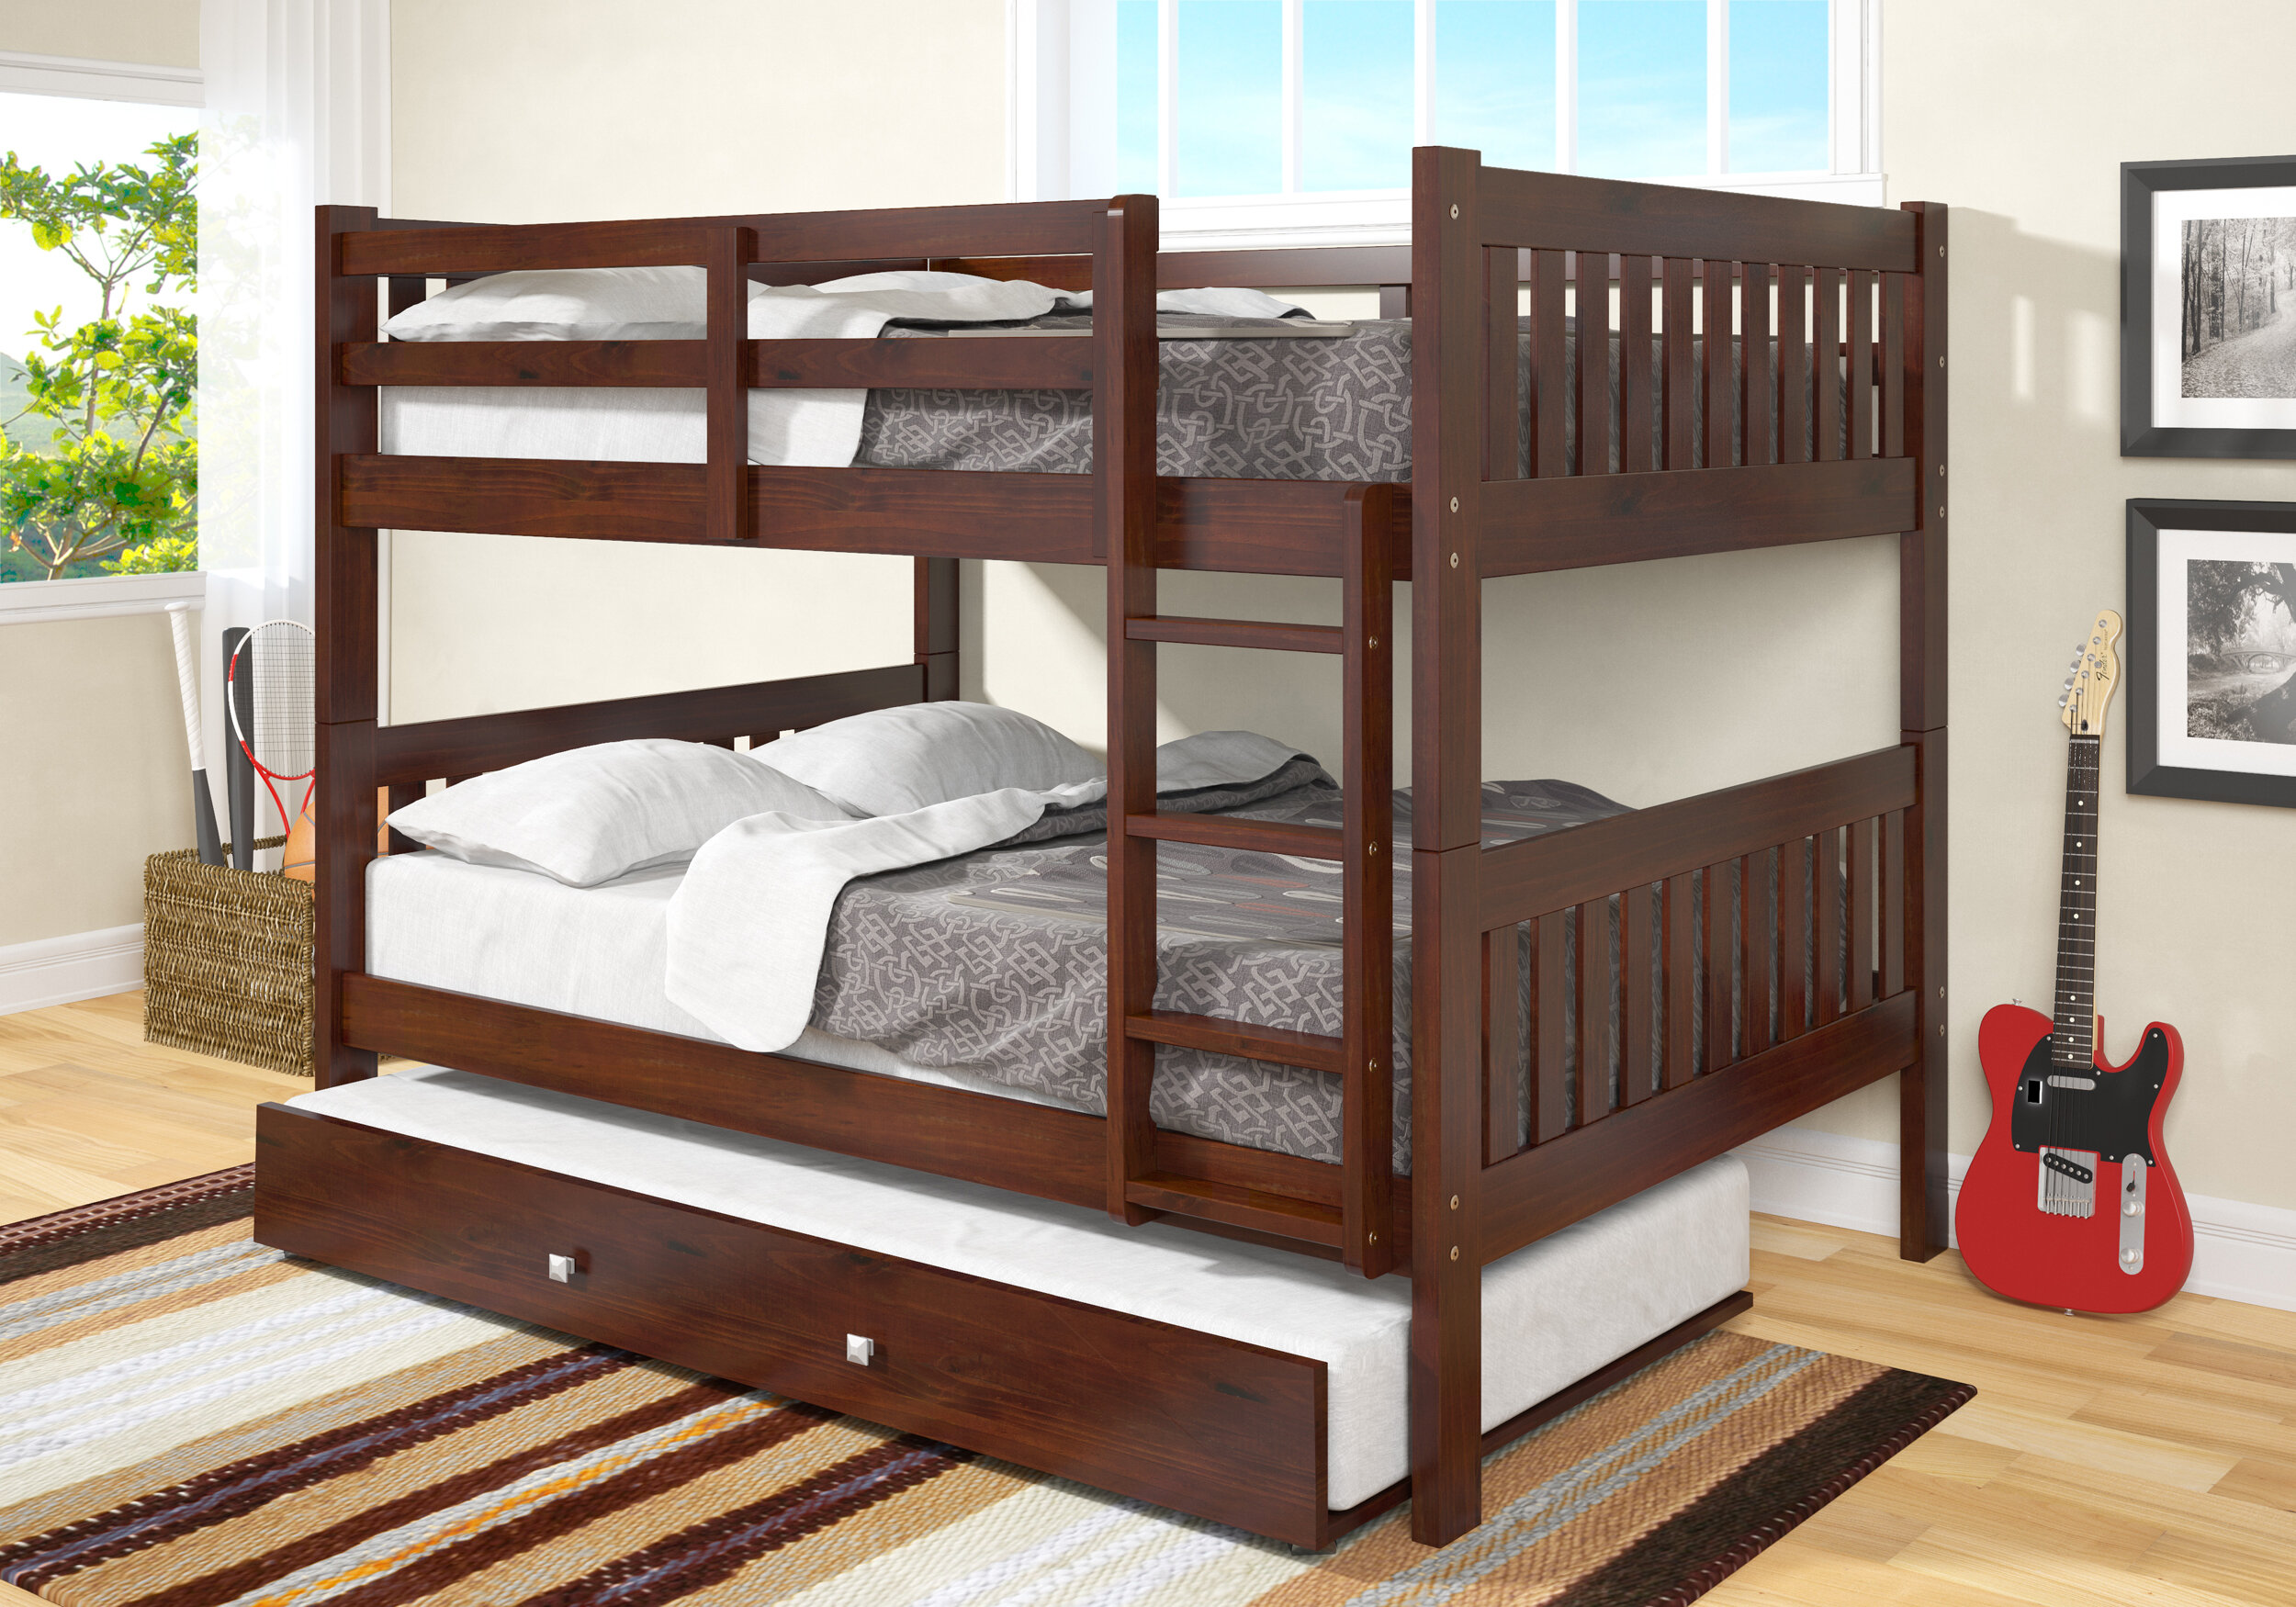 766f0cad915ba8 Harriet Bee Hargrave Full over Full Bunk Bed with Trundle & Reviews |  Wayfair